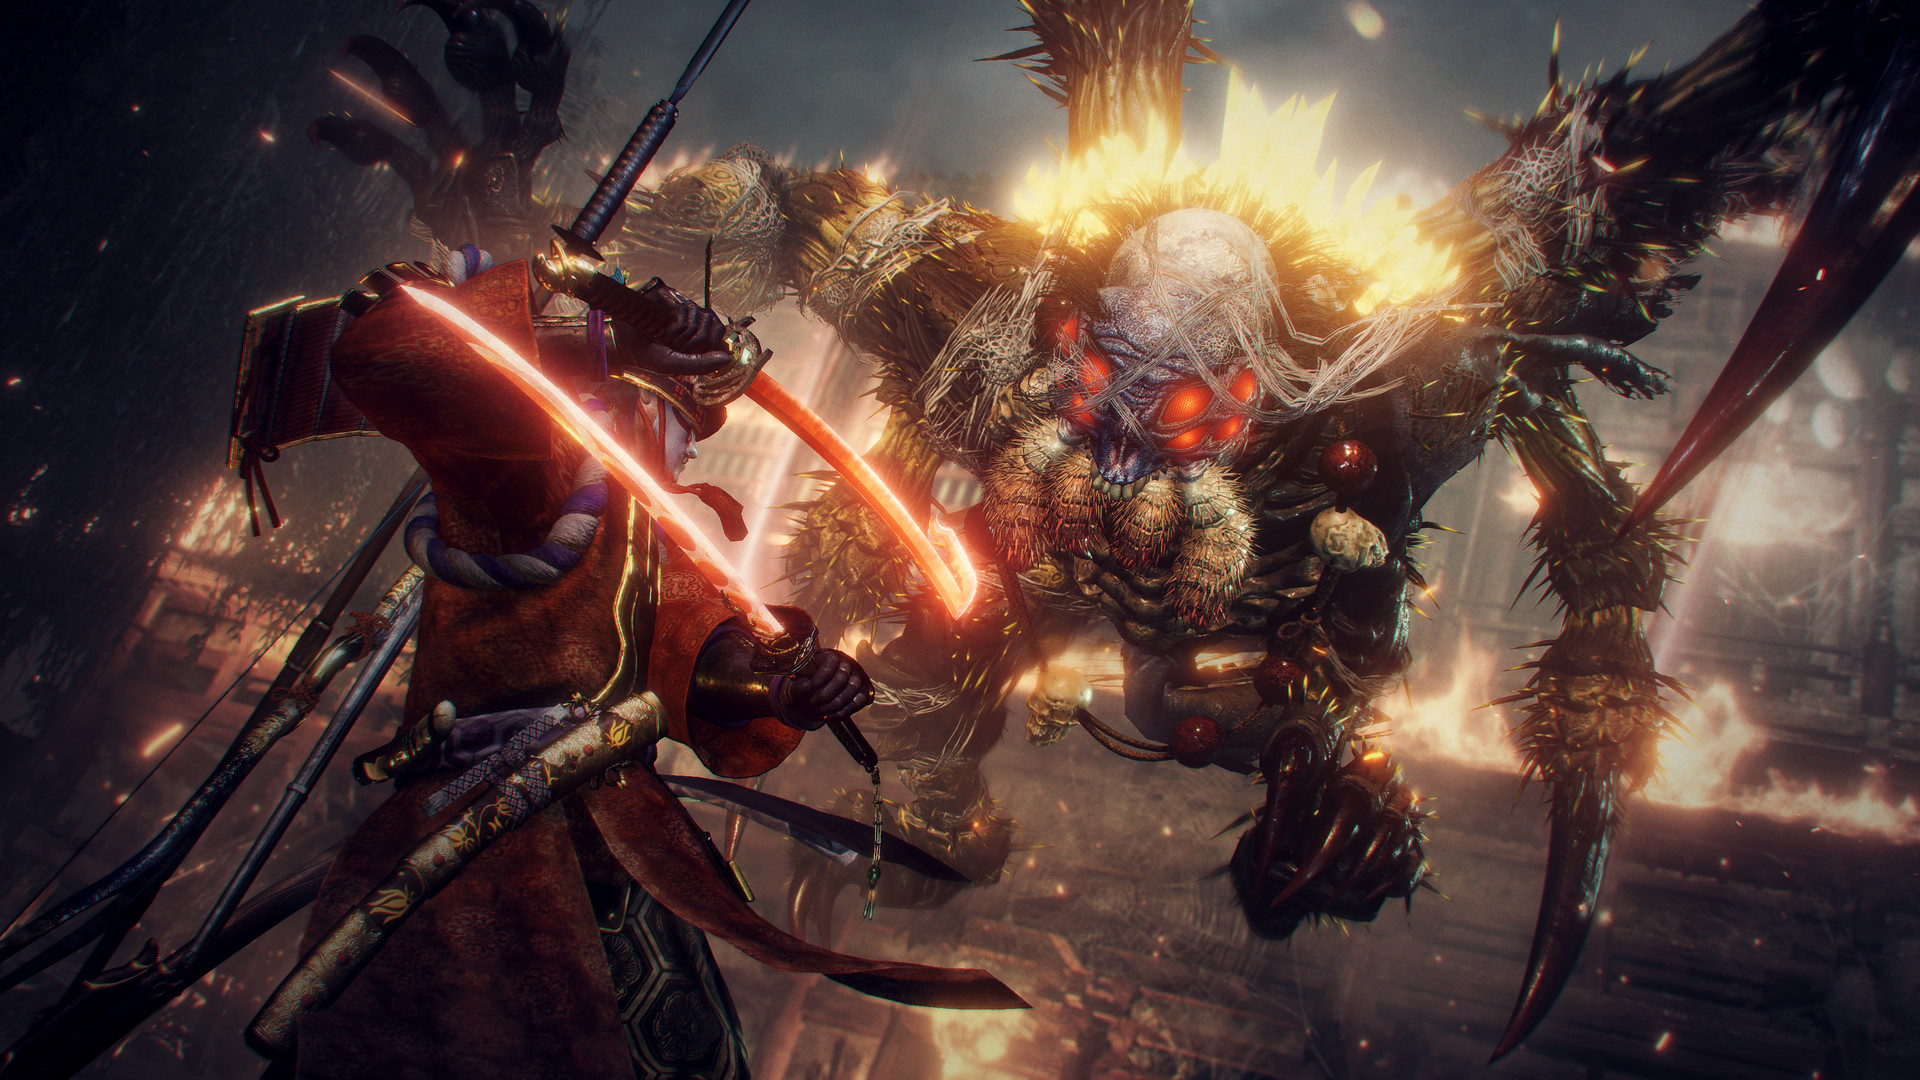 Nvidia's DLSS tech has been added to Nioh 2's PC version